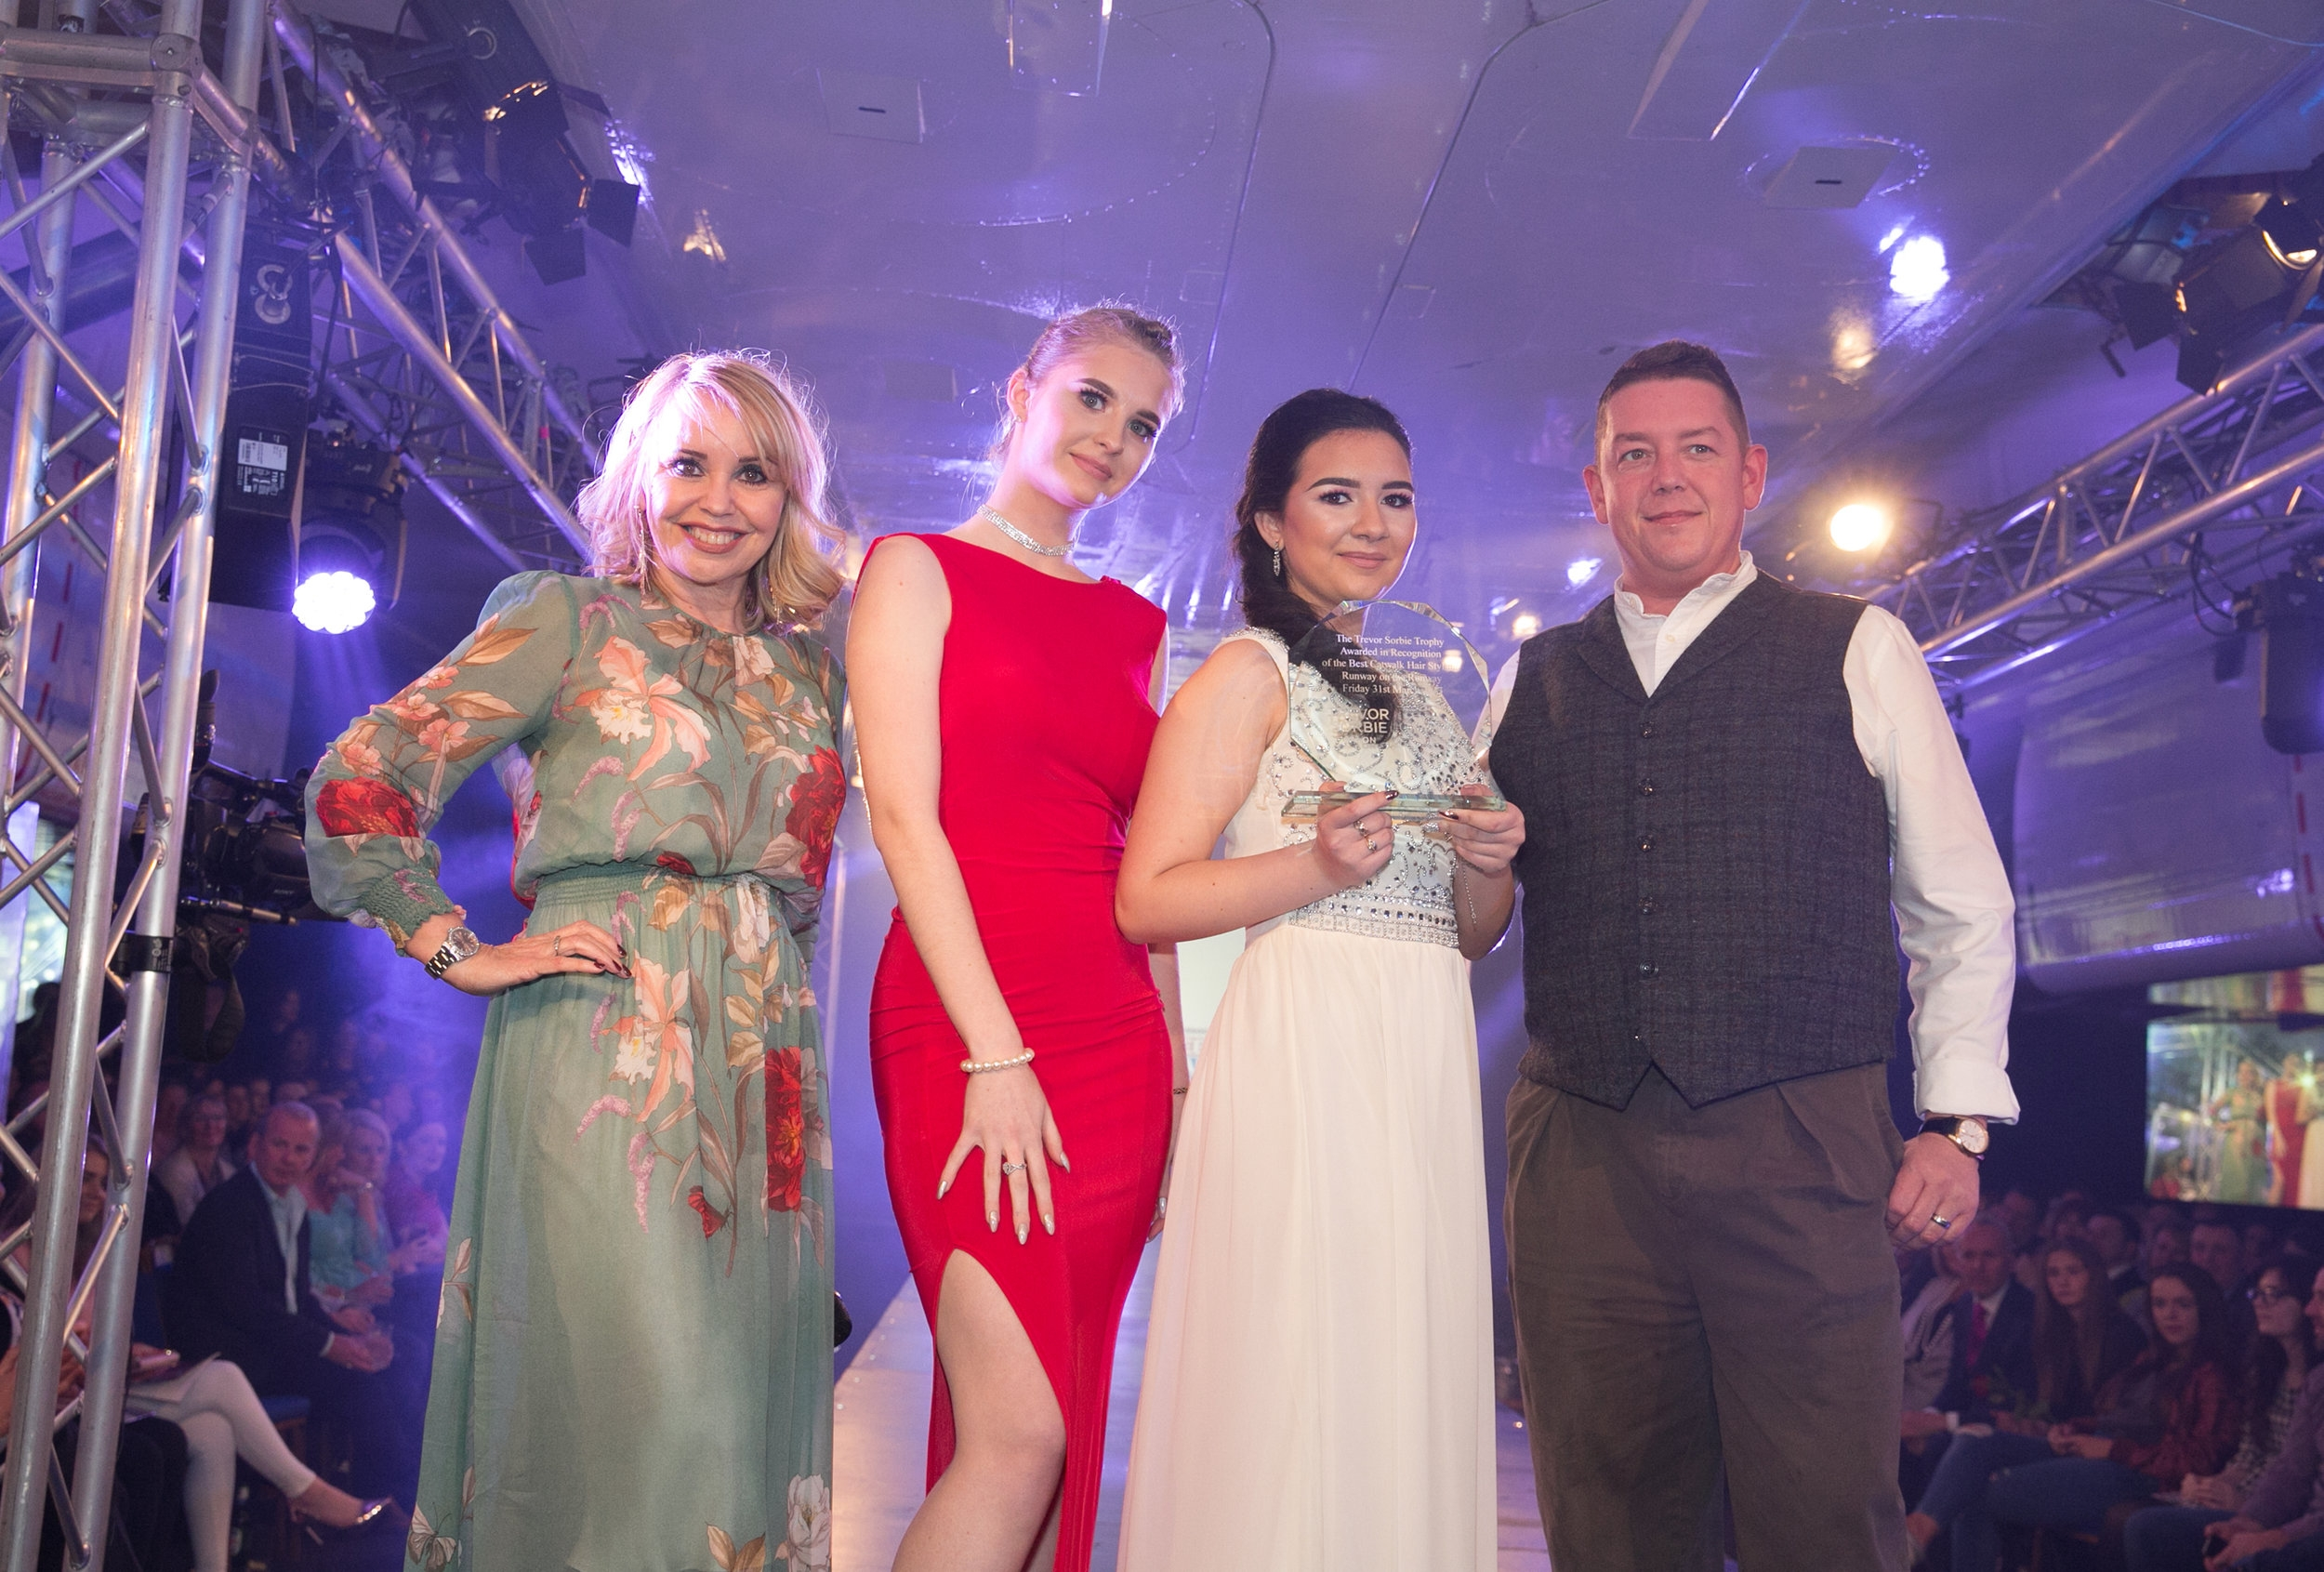 TREVOR SORBIE AWARD FOR BEST CATWALK HAIR WAS AWARDED TO THE CO-OPERATIVE ACADEMY